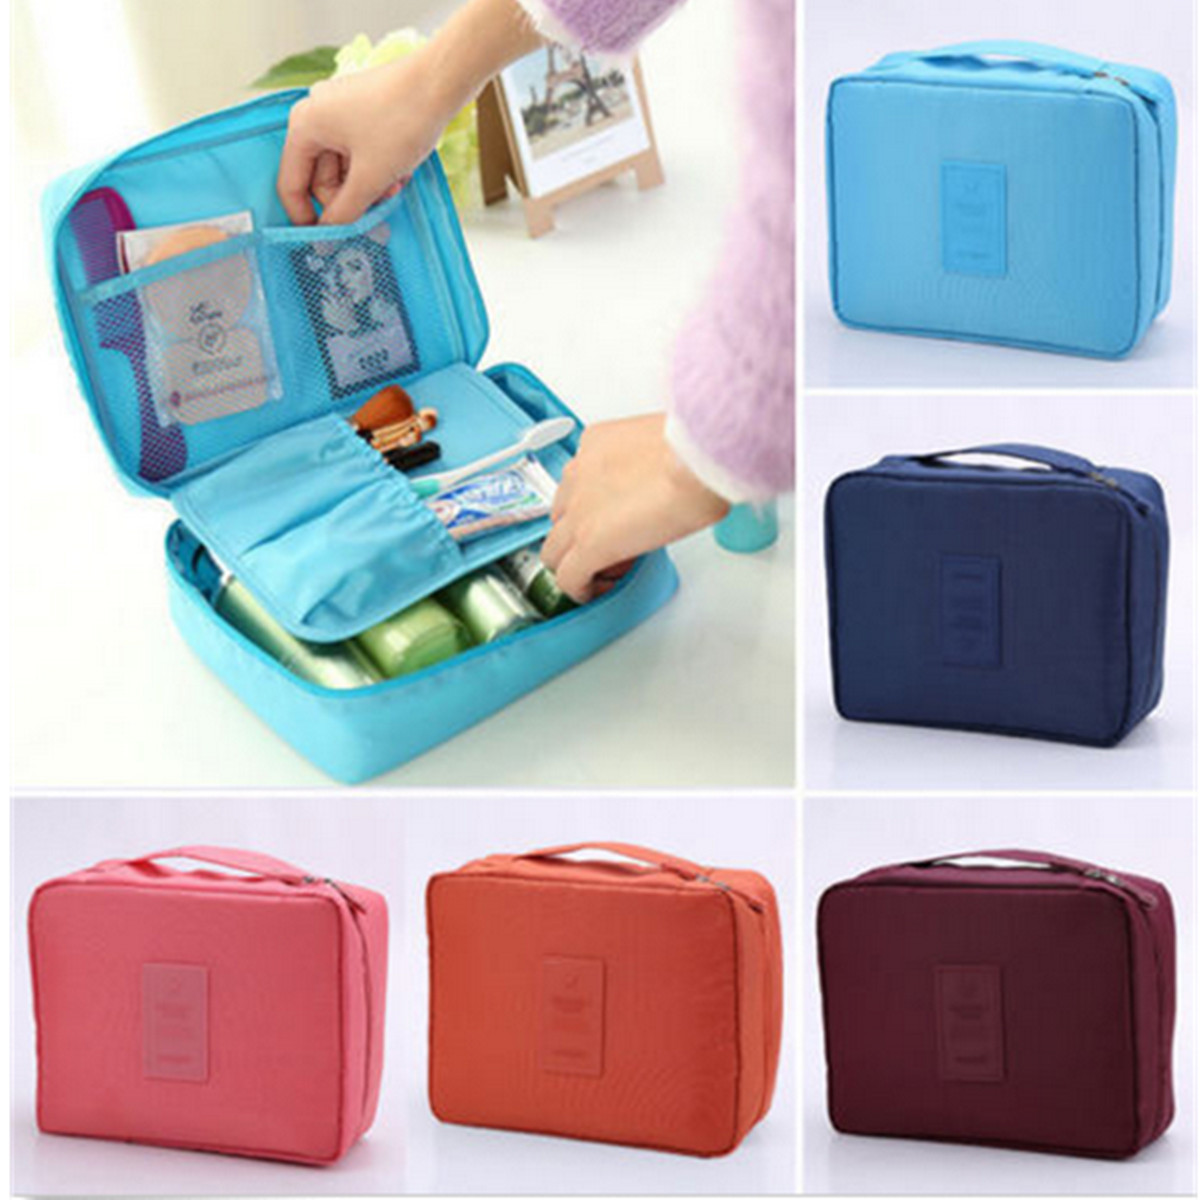 Portable Travel Cosmetic Bag Makeup Organizer Case Box Storage Bag Cosmetic  Toiletry Hanging Pouch Handbag